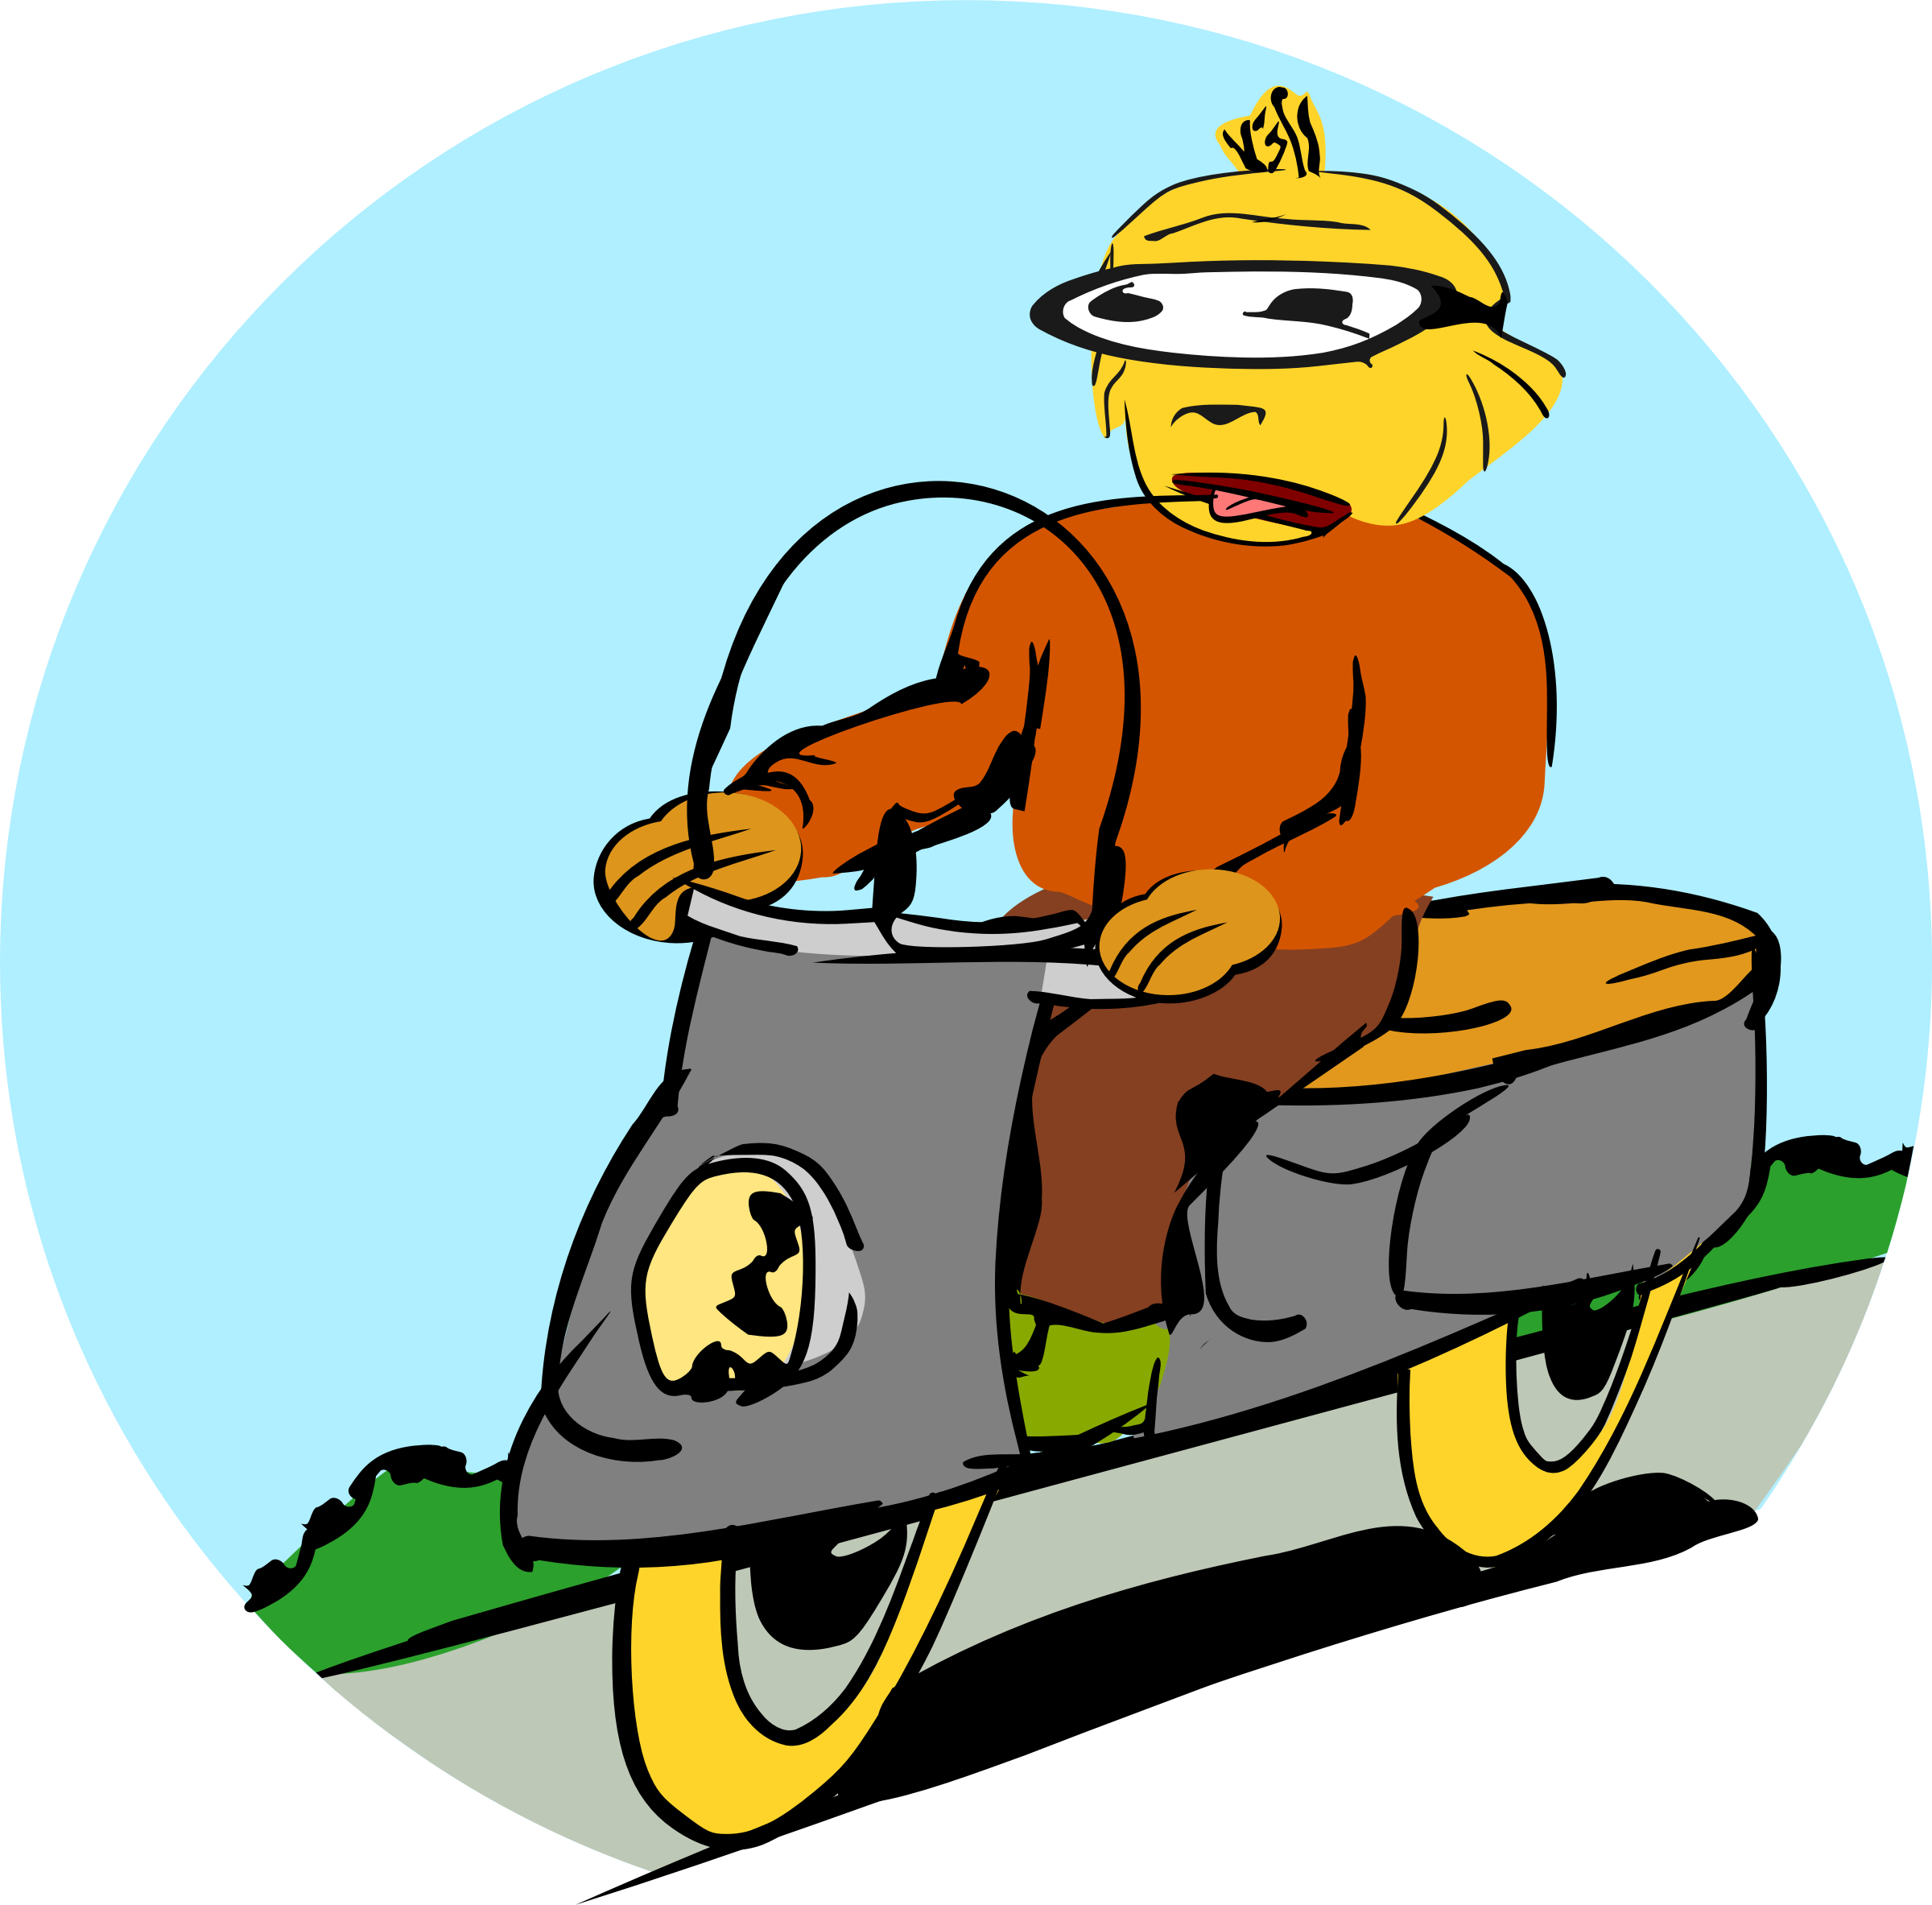 Scooter driver by rdevries